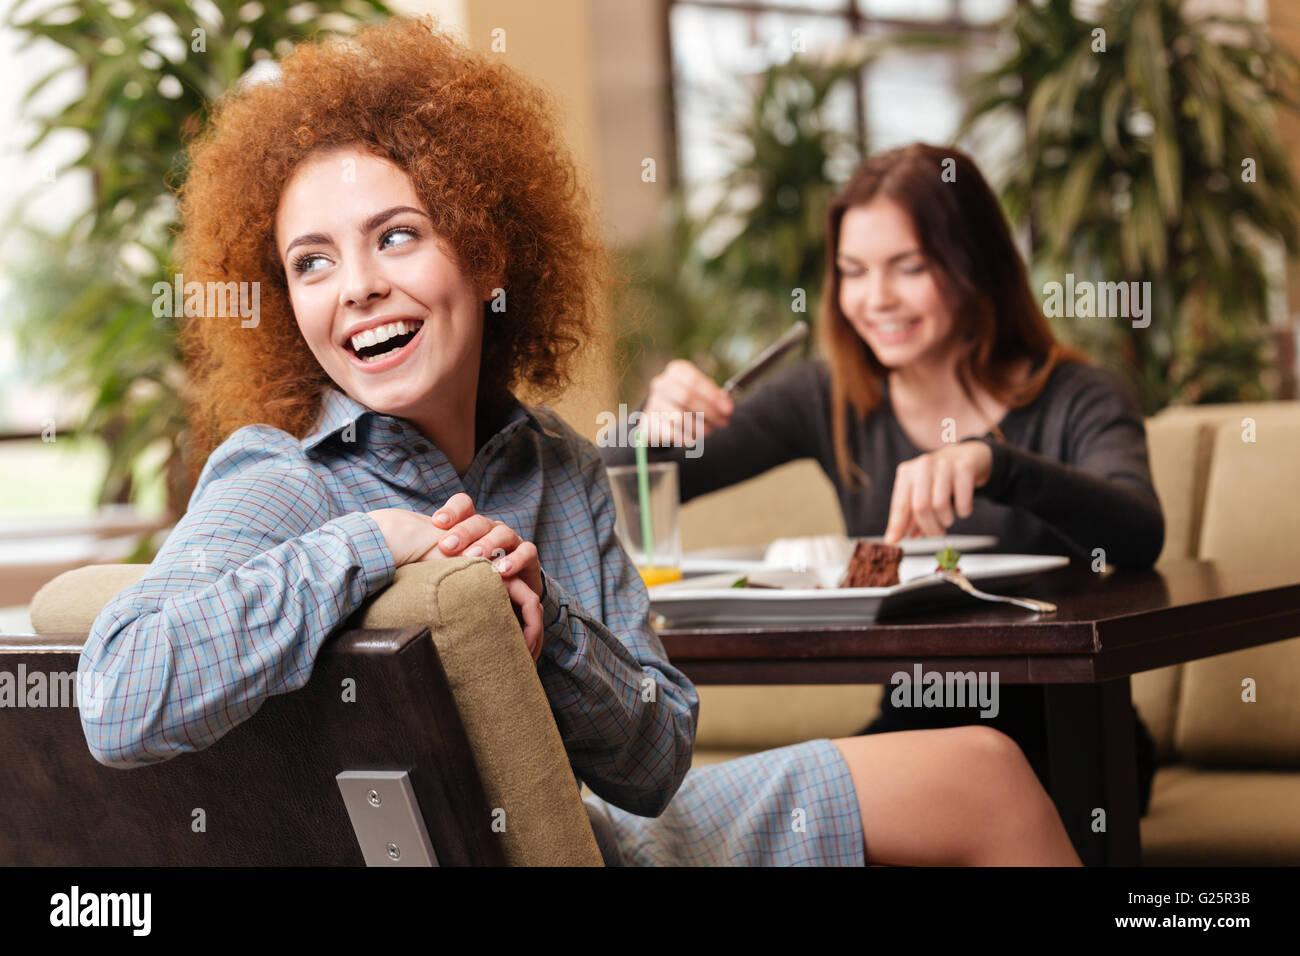 Two cheerful beautiful young women sitting in cafe and laughing together Stock Photo